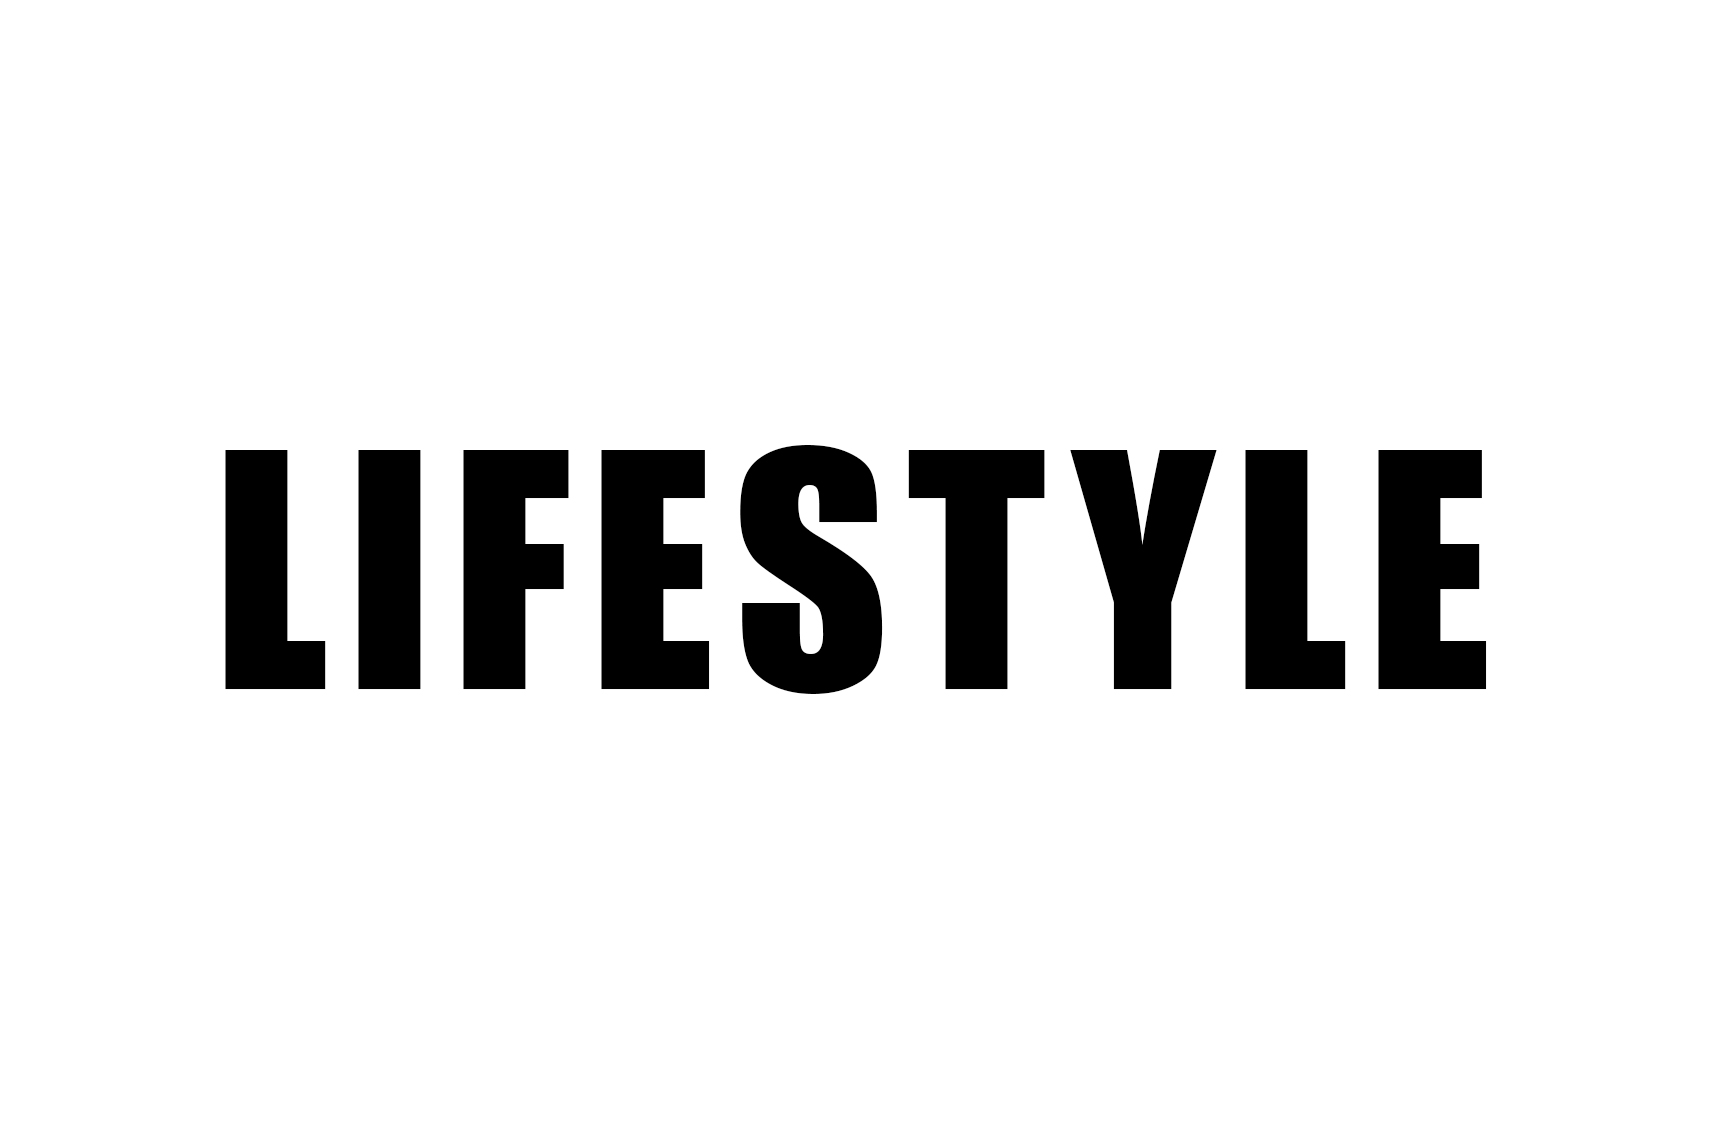 Lifestyle-Page